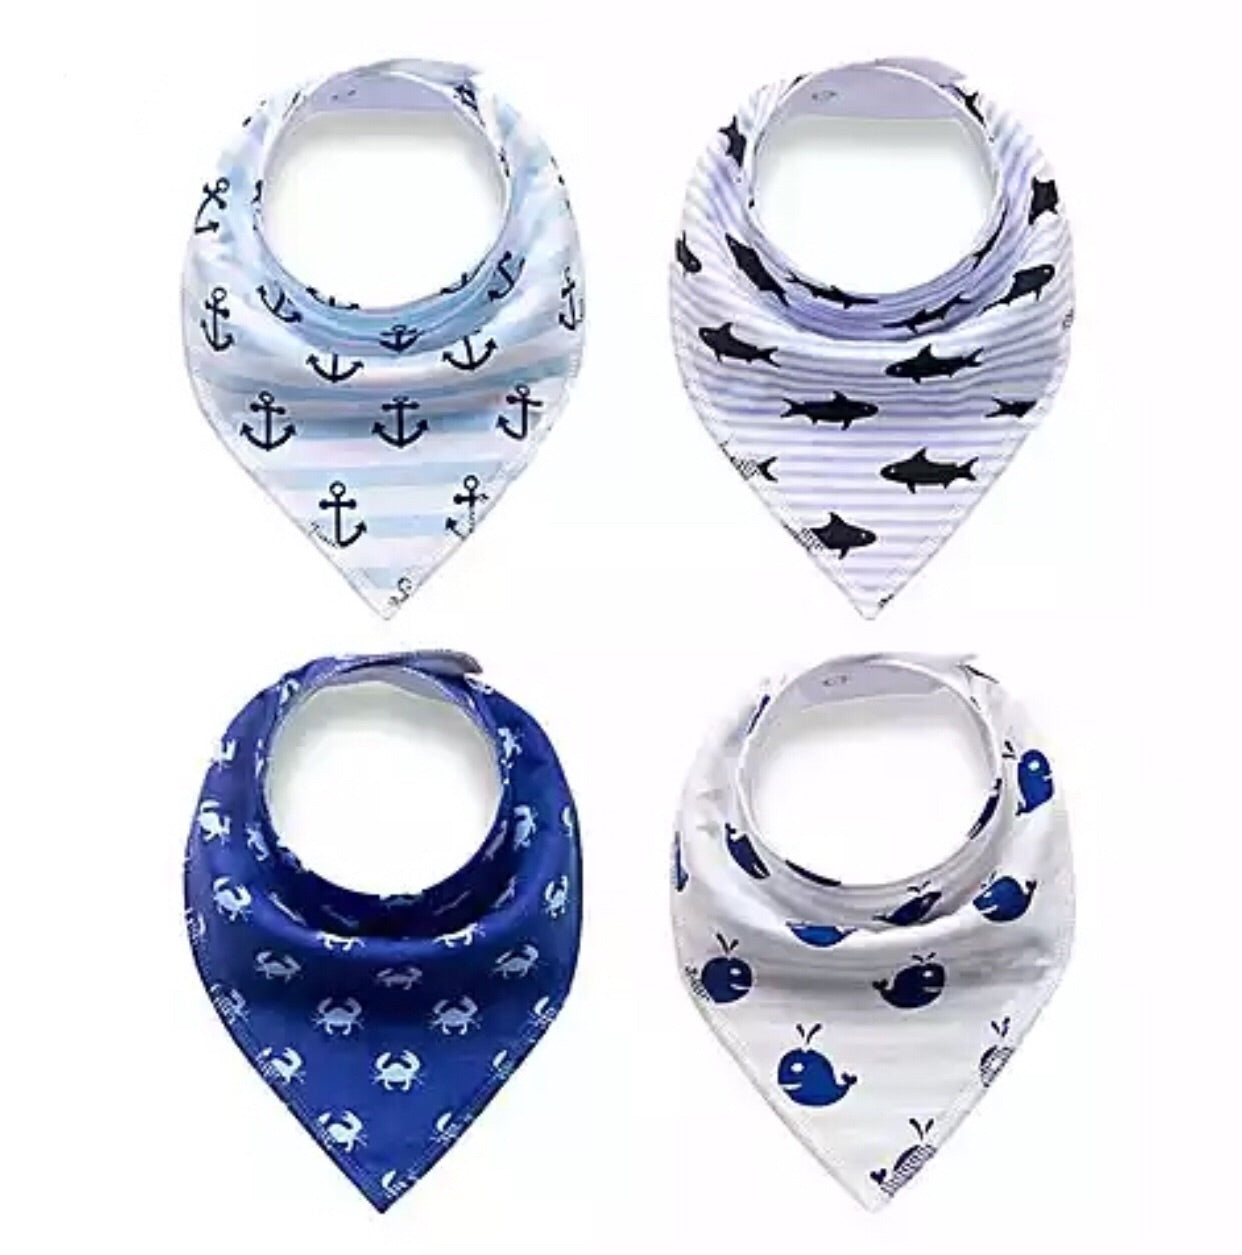 Nordic Baby Bib (Bundle Set of 4)